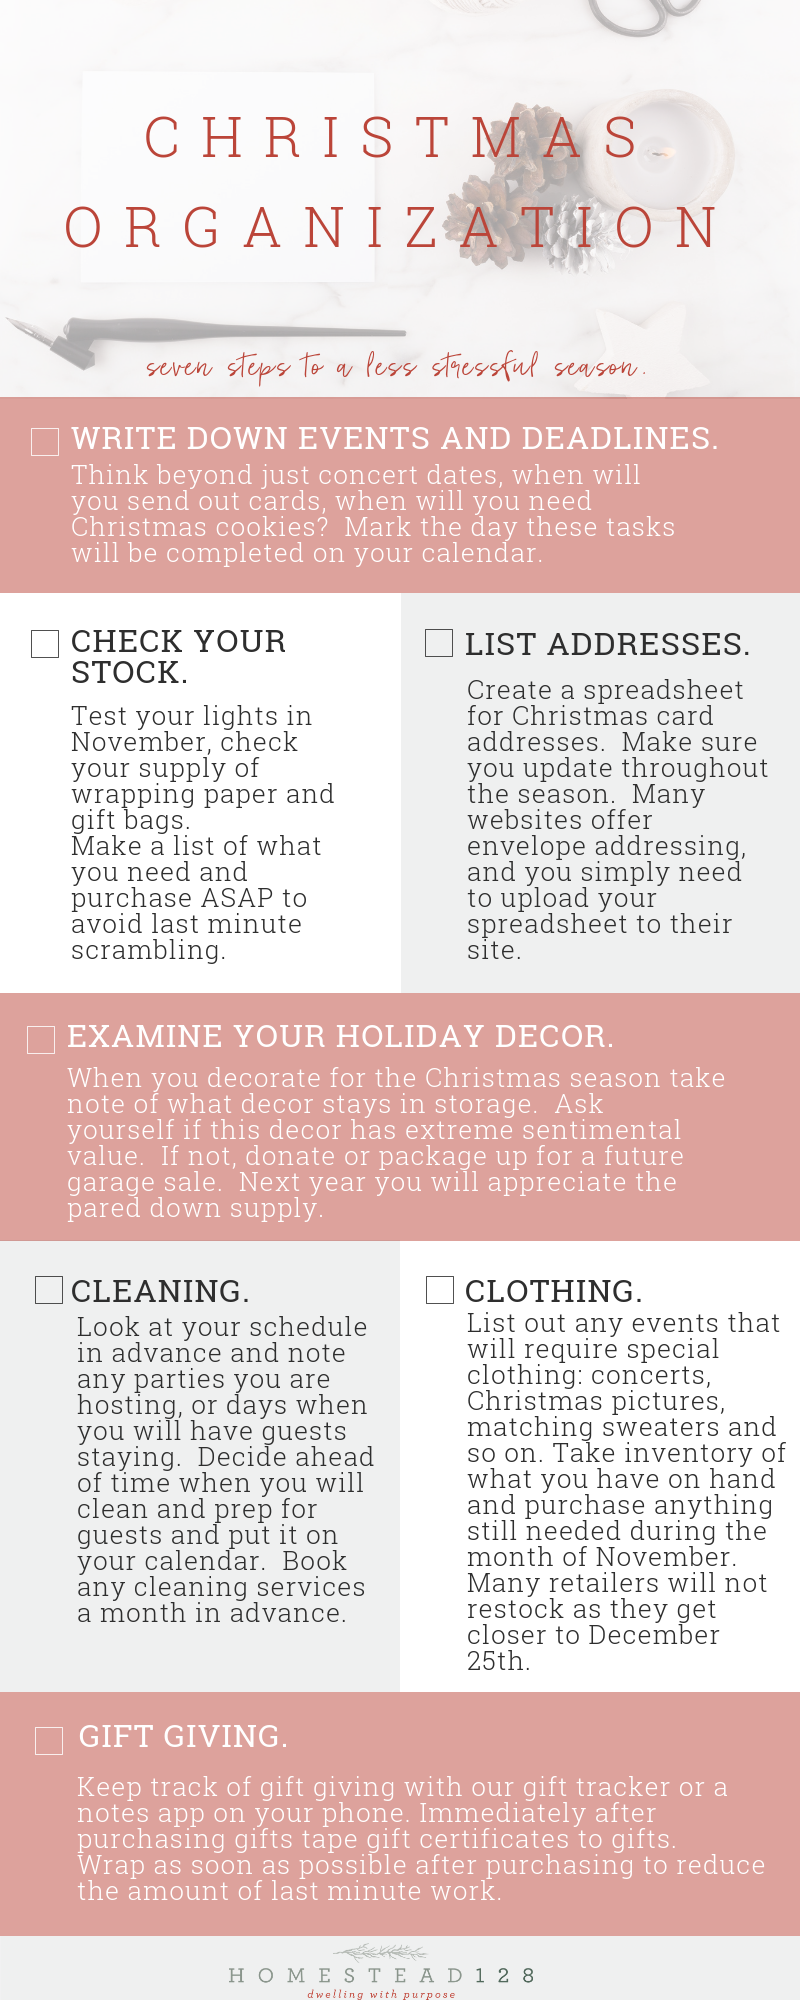 Christmas well organized - take action now for a less stressful December.